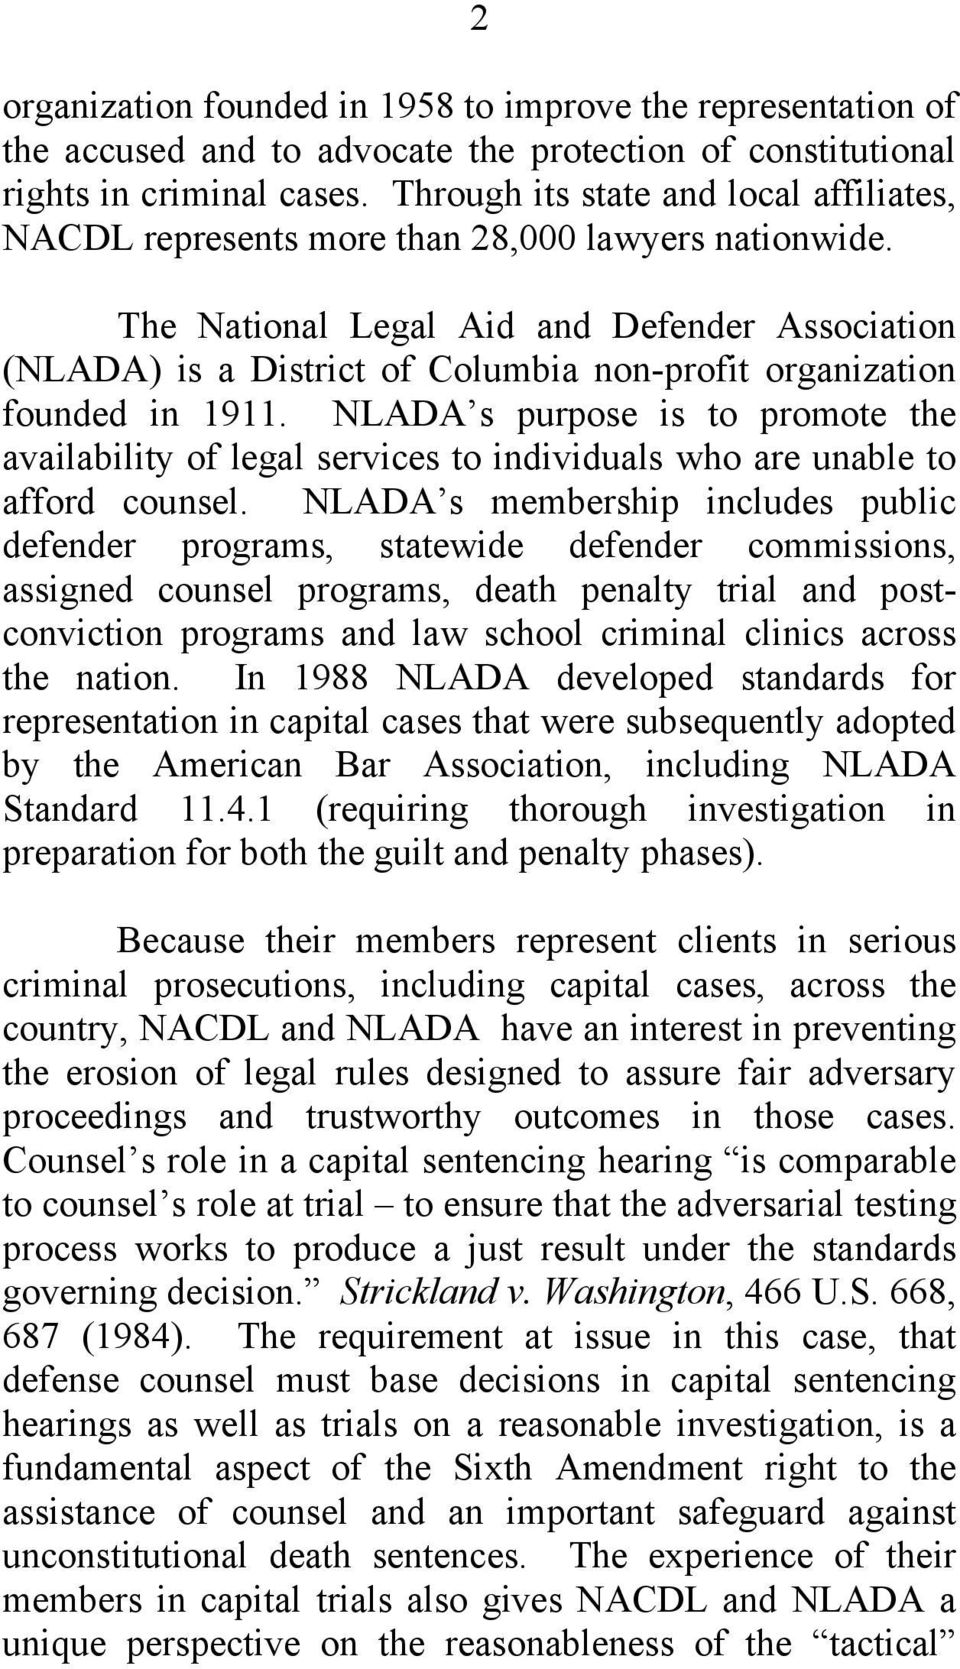 The National Legal Aid and Defender Association (NLADA) is a District of Columbia non-profit organization founded in 1911.